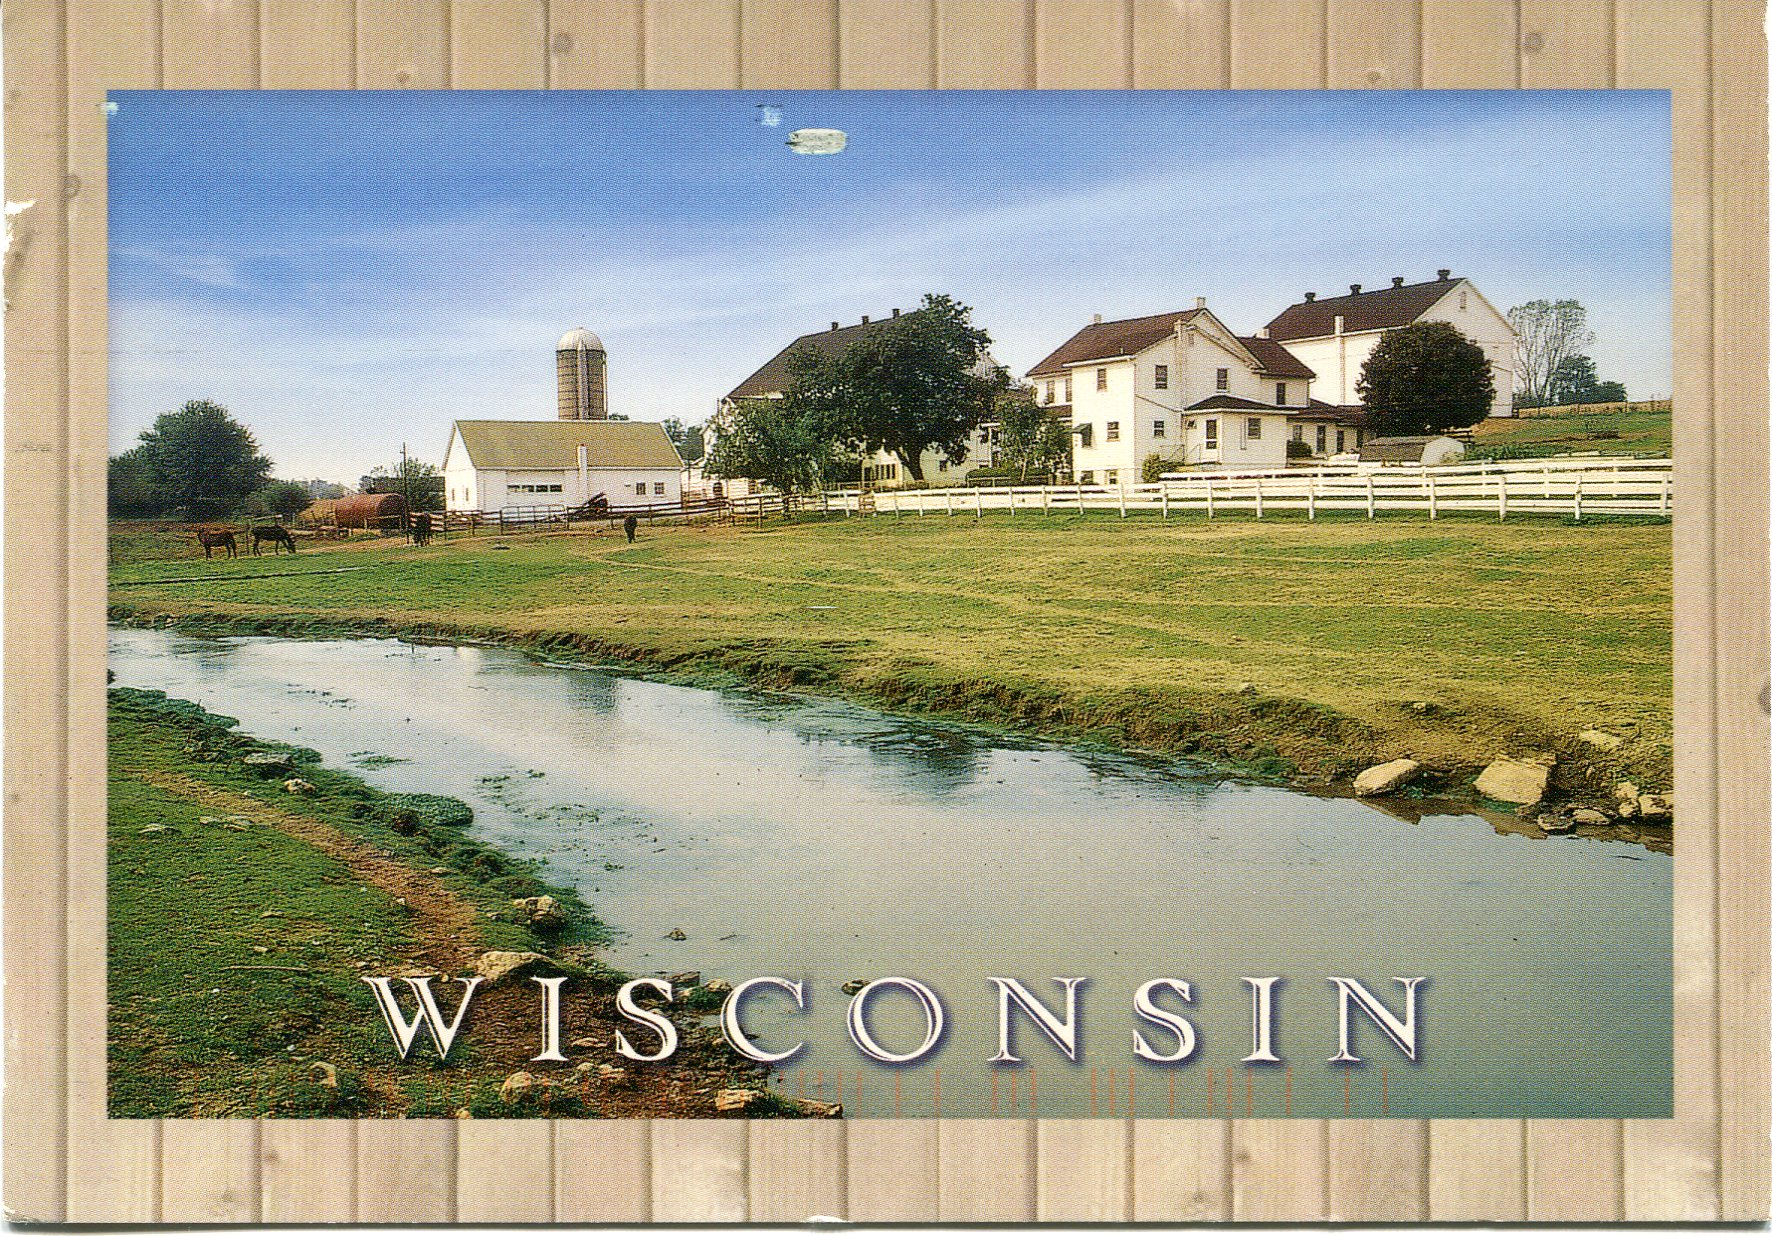 By writing letters amp postcards in cards received usa wisconsin